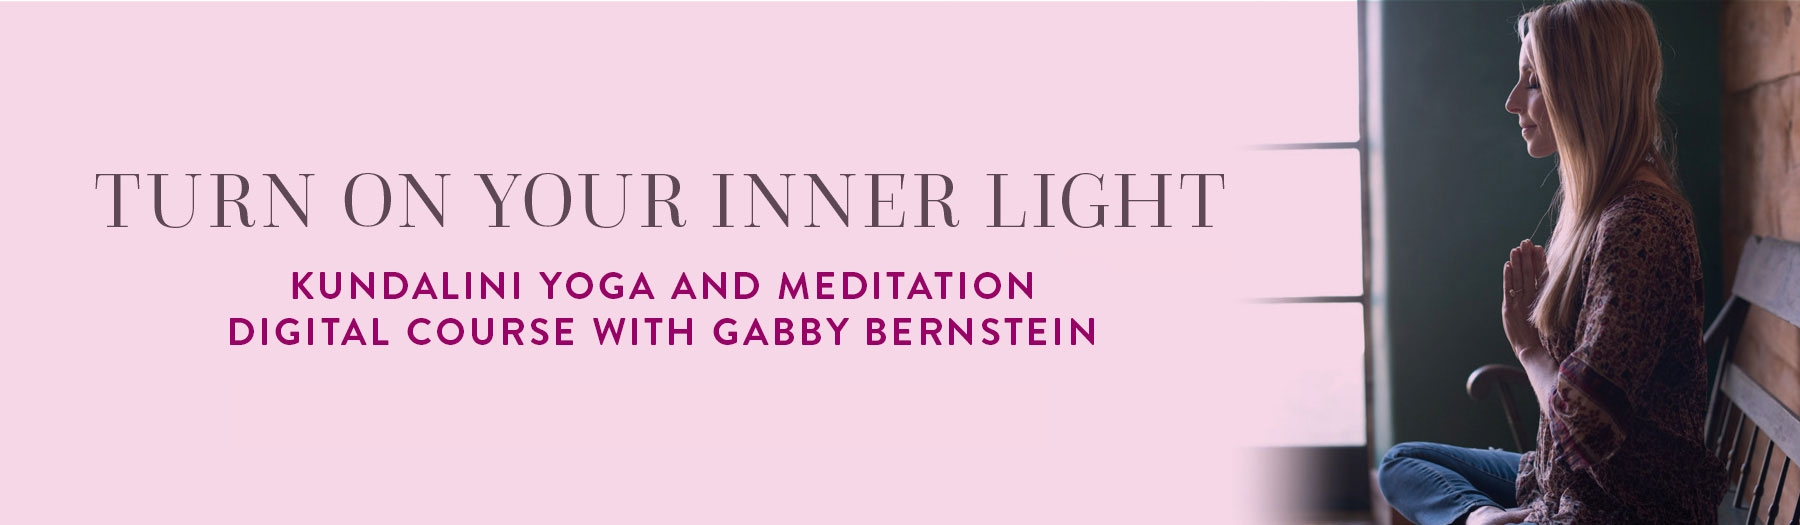 Turn On Your Inner Light Kundalini meditation digital course with Gabby Bernstein